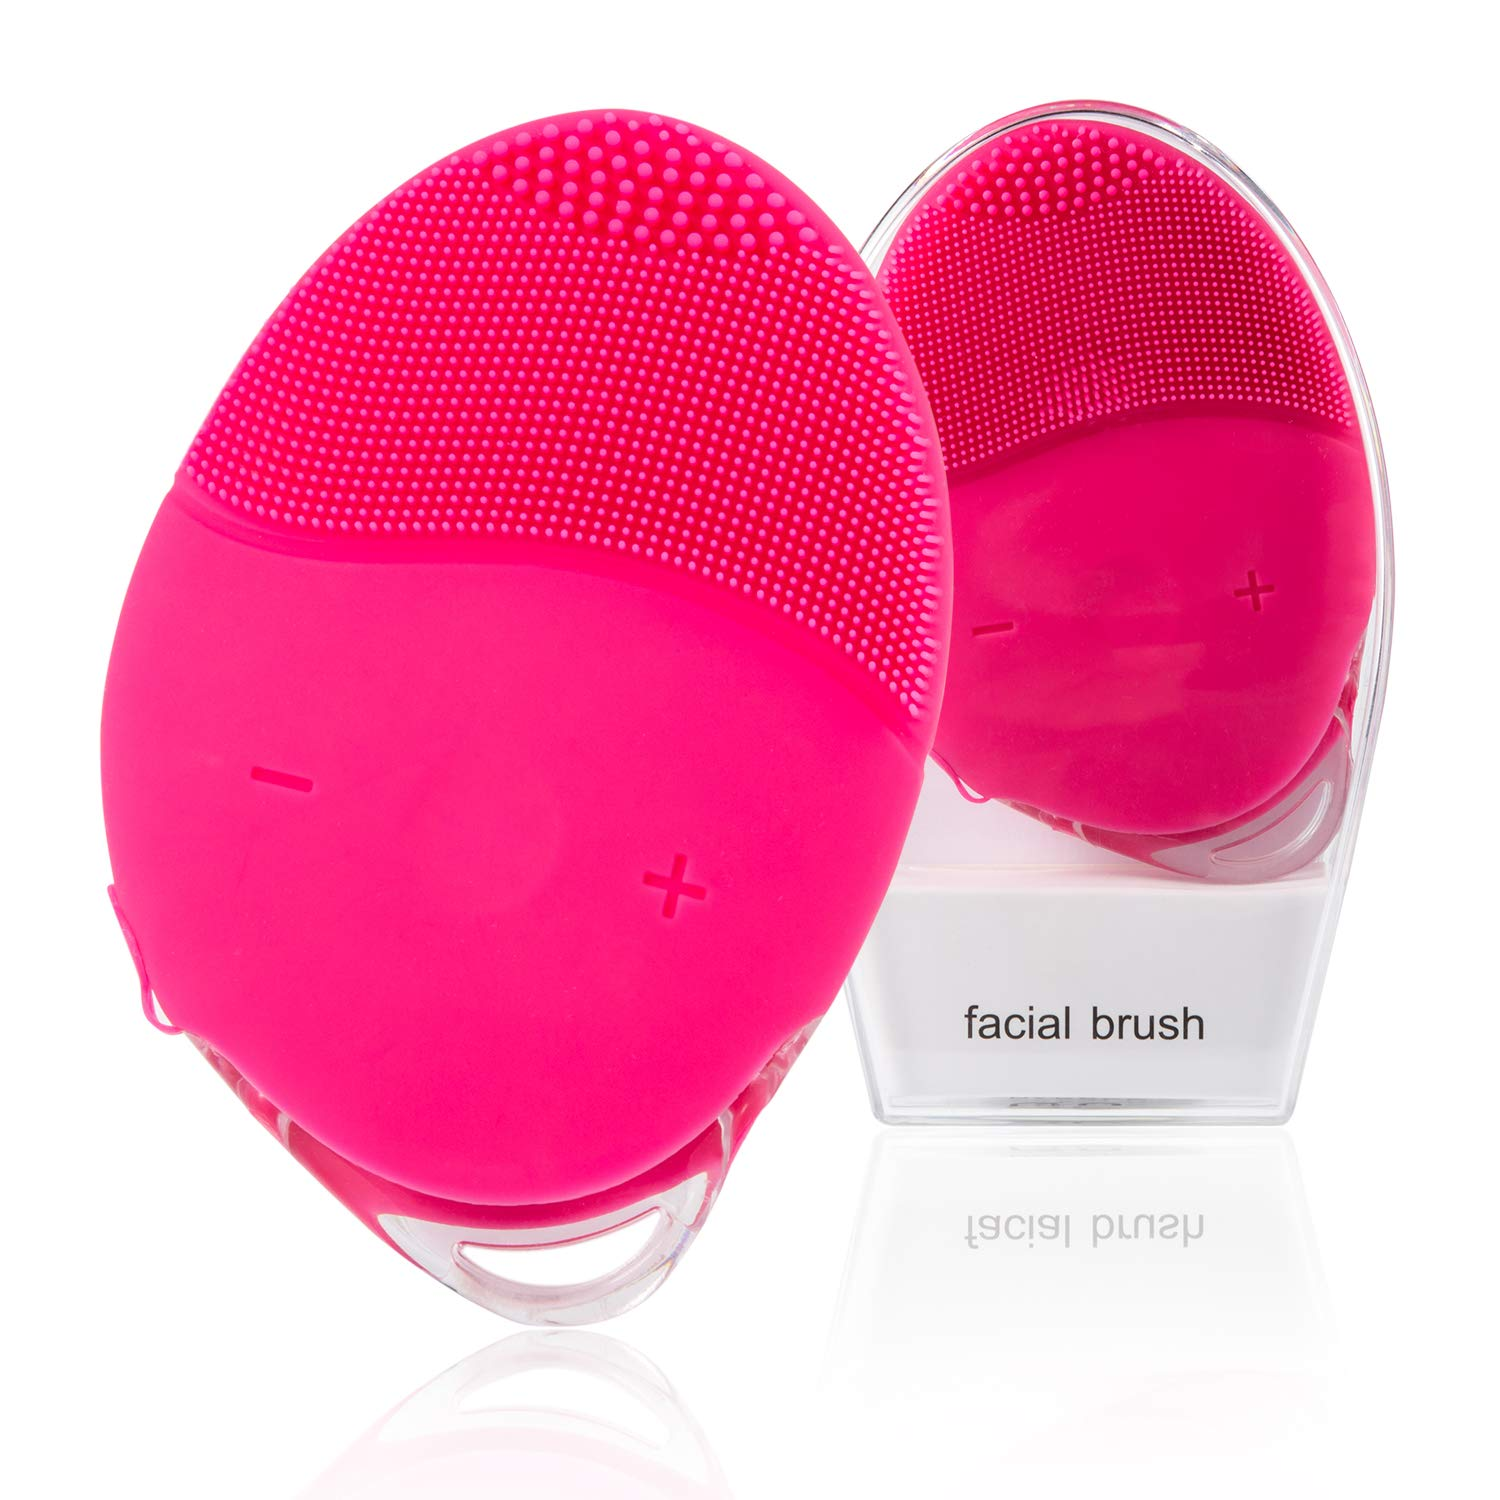 Facial Cleansing Brush, House Envy Sonic Face Brushes, Rechargeable Electric Cleanser Brush Silicone for Deep Cleaning, Removing Blackhead and Massage